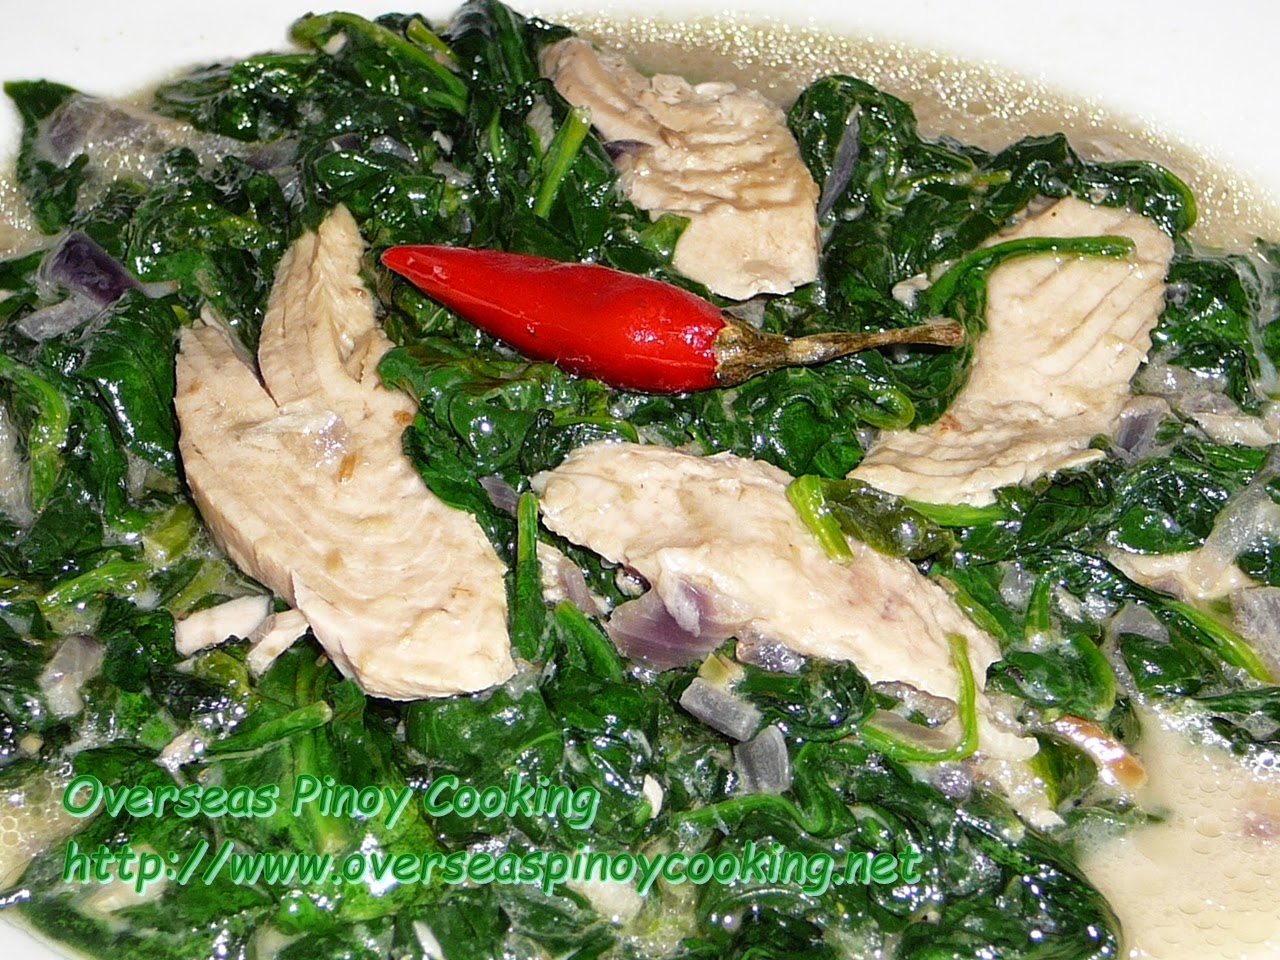 Canned Smoked Tuna with Spinach in Coconut Milk